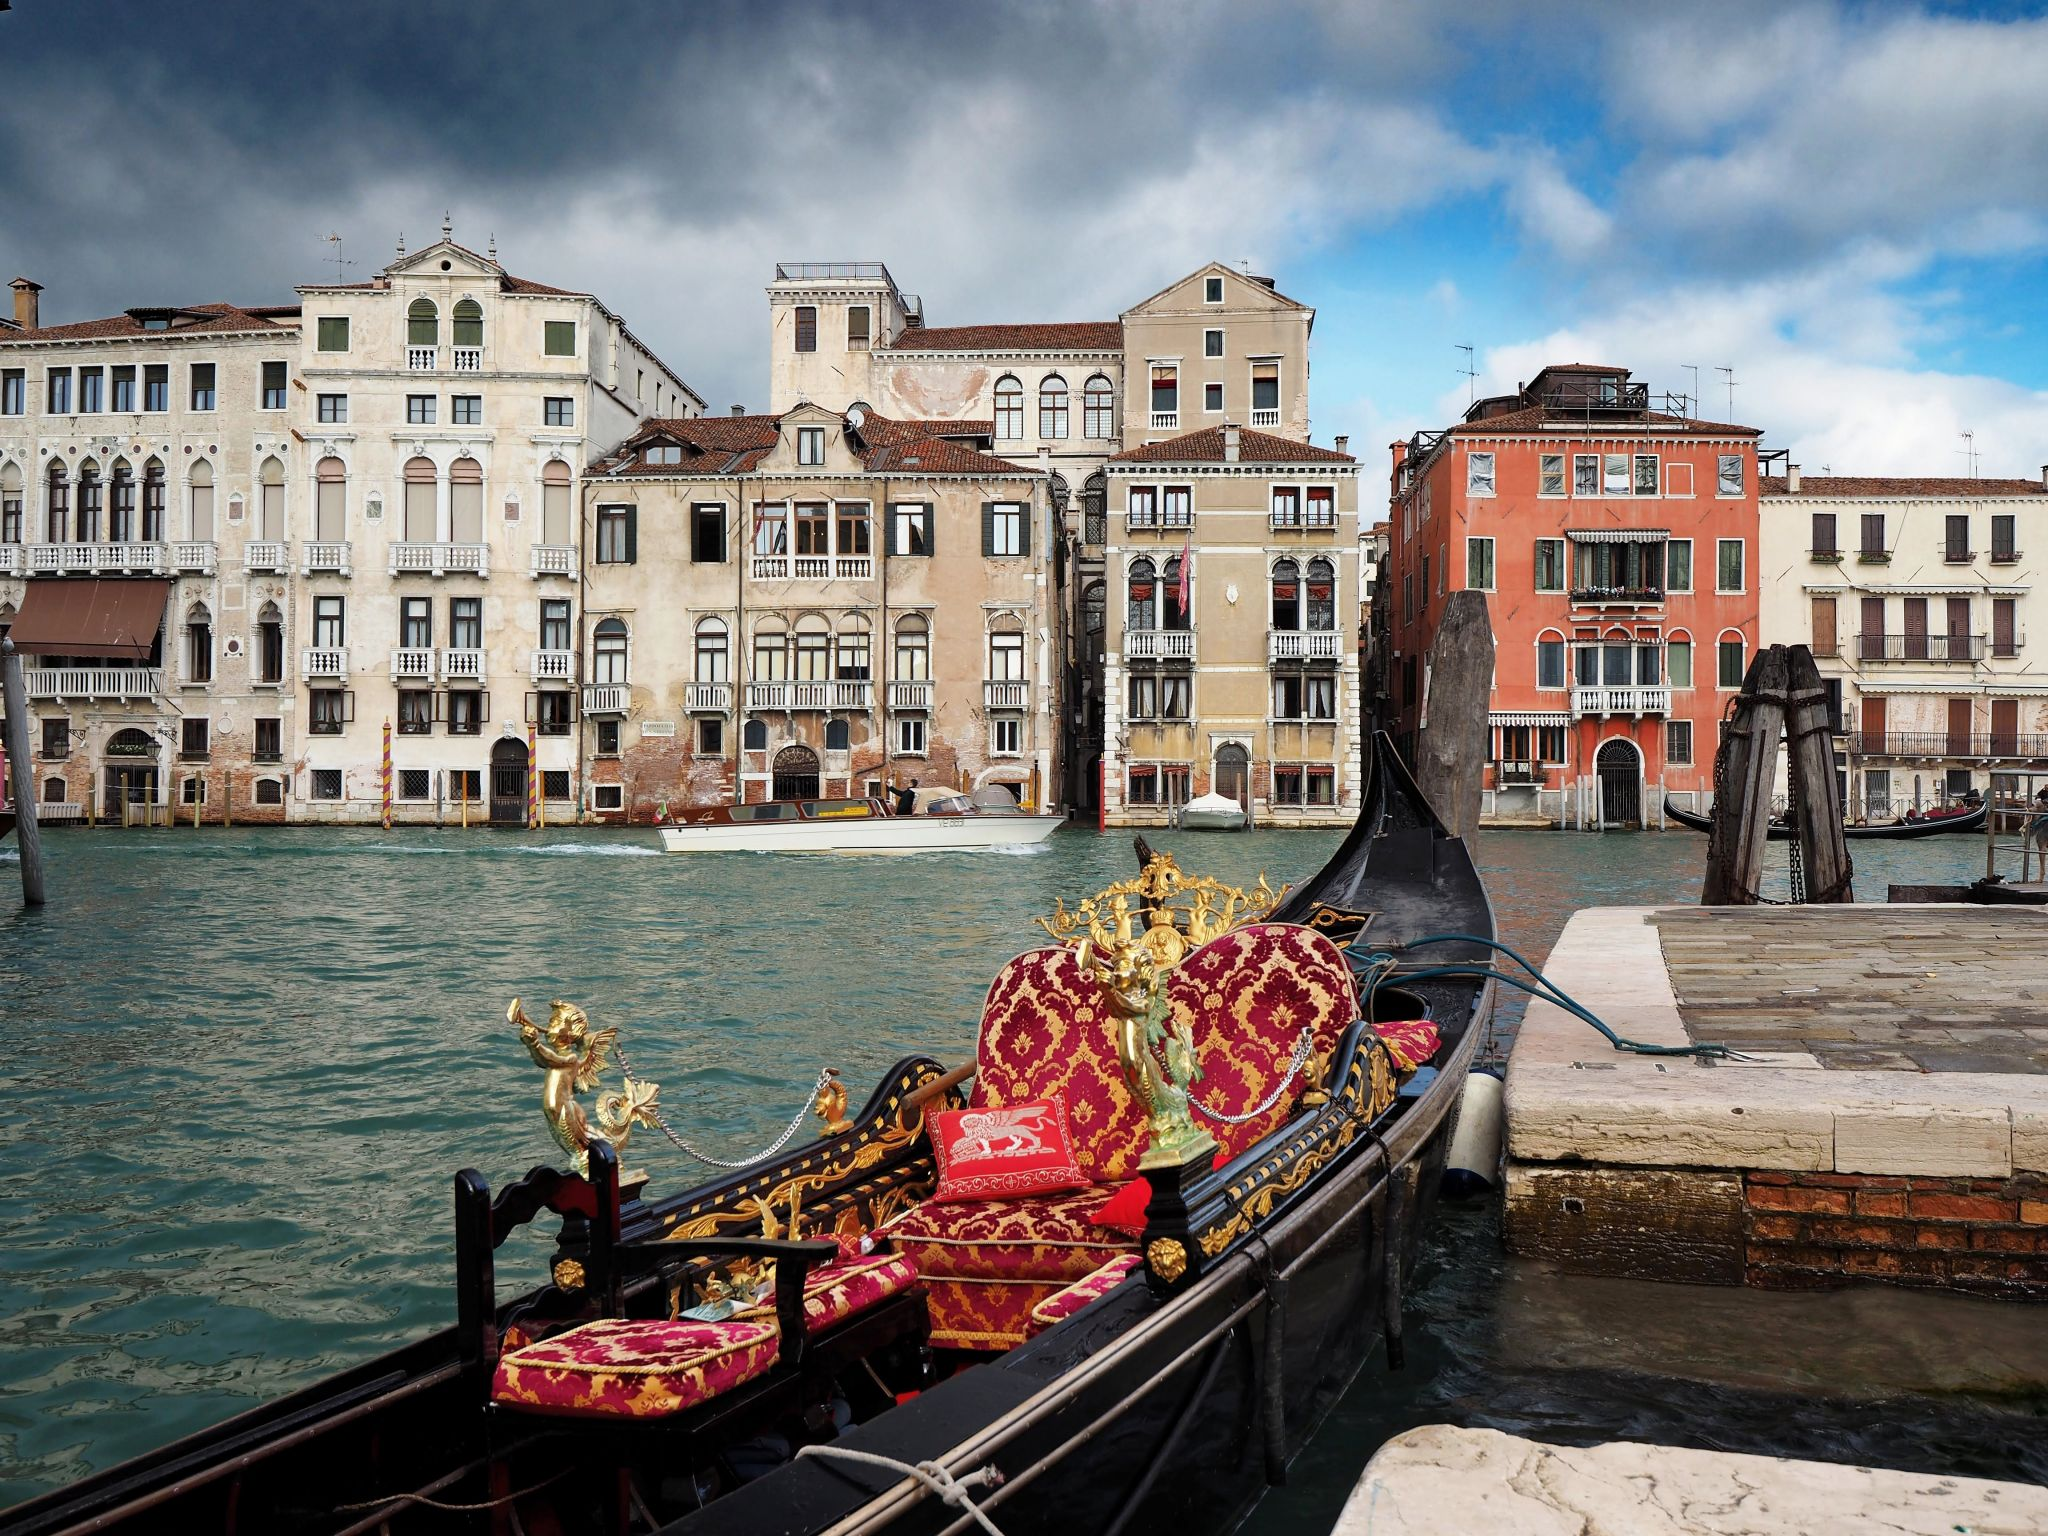 Bank of Canal Grande, Italy